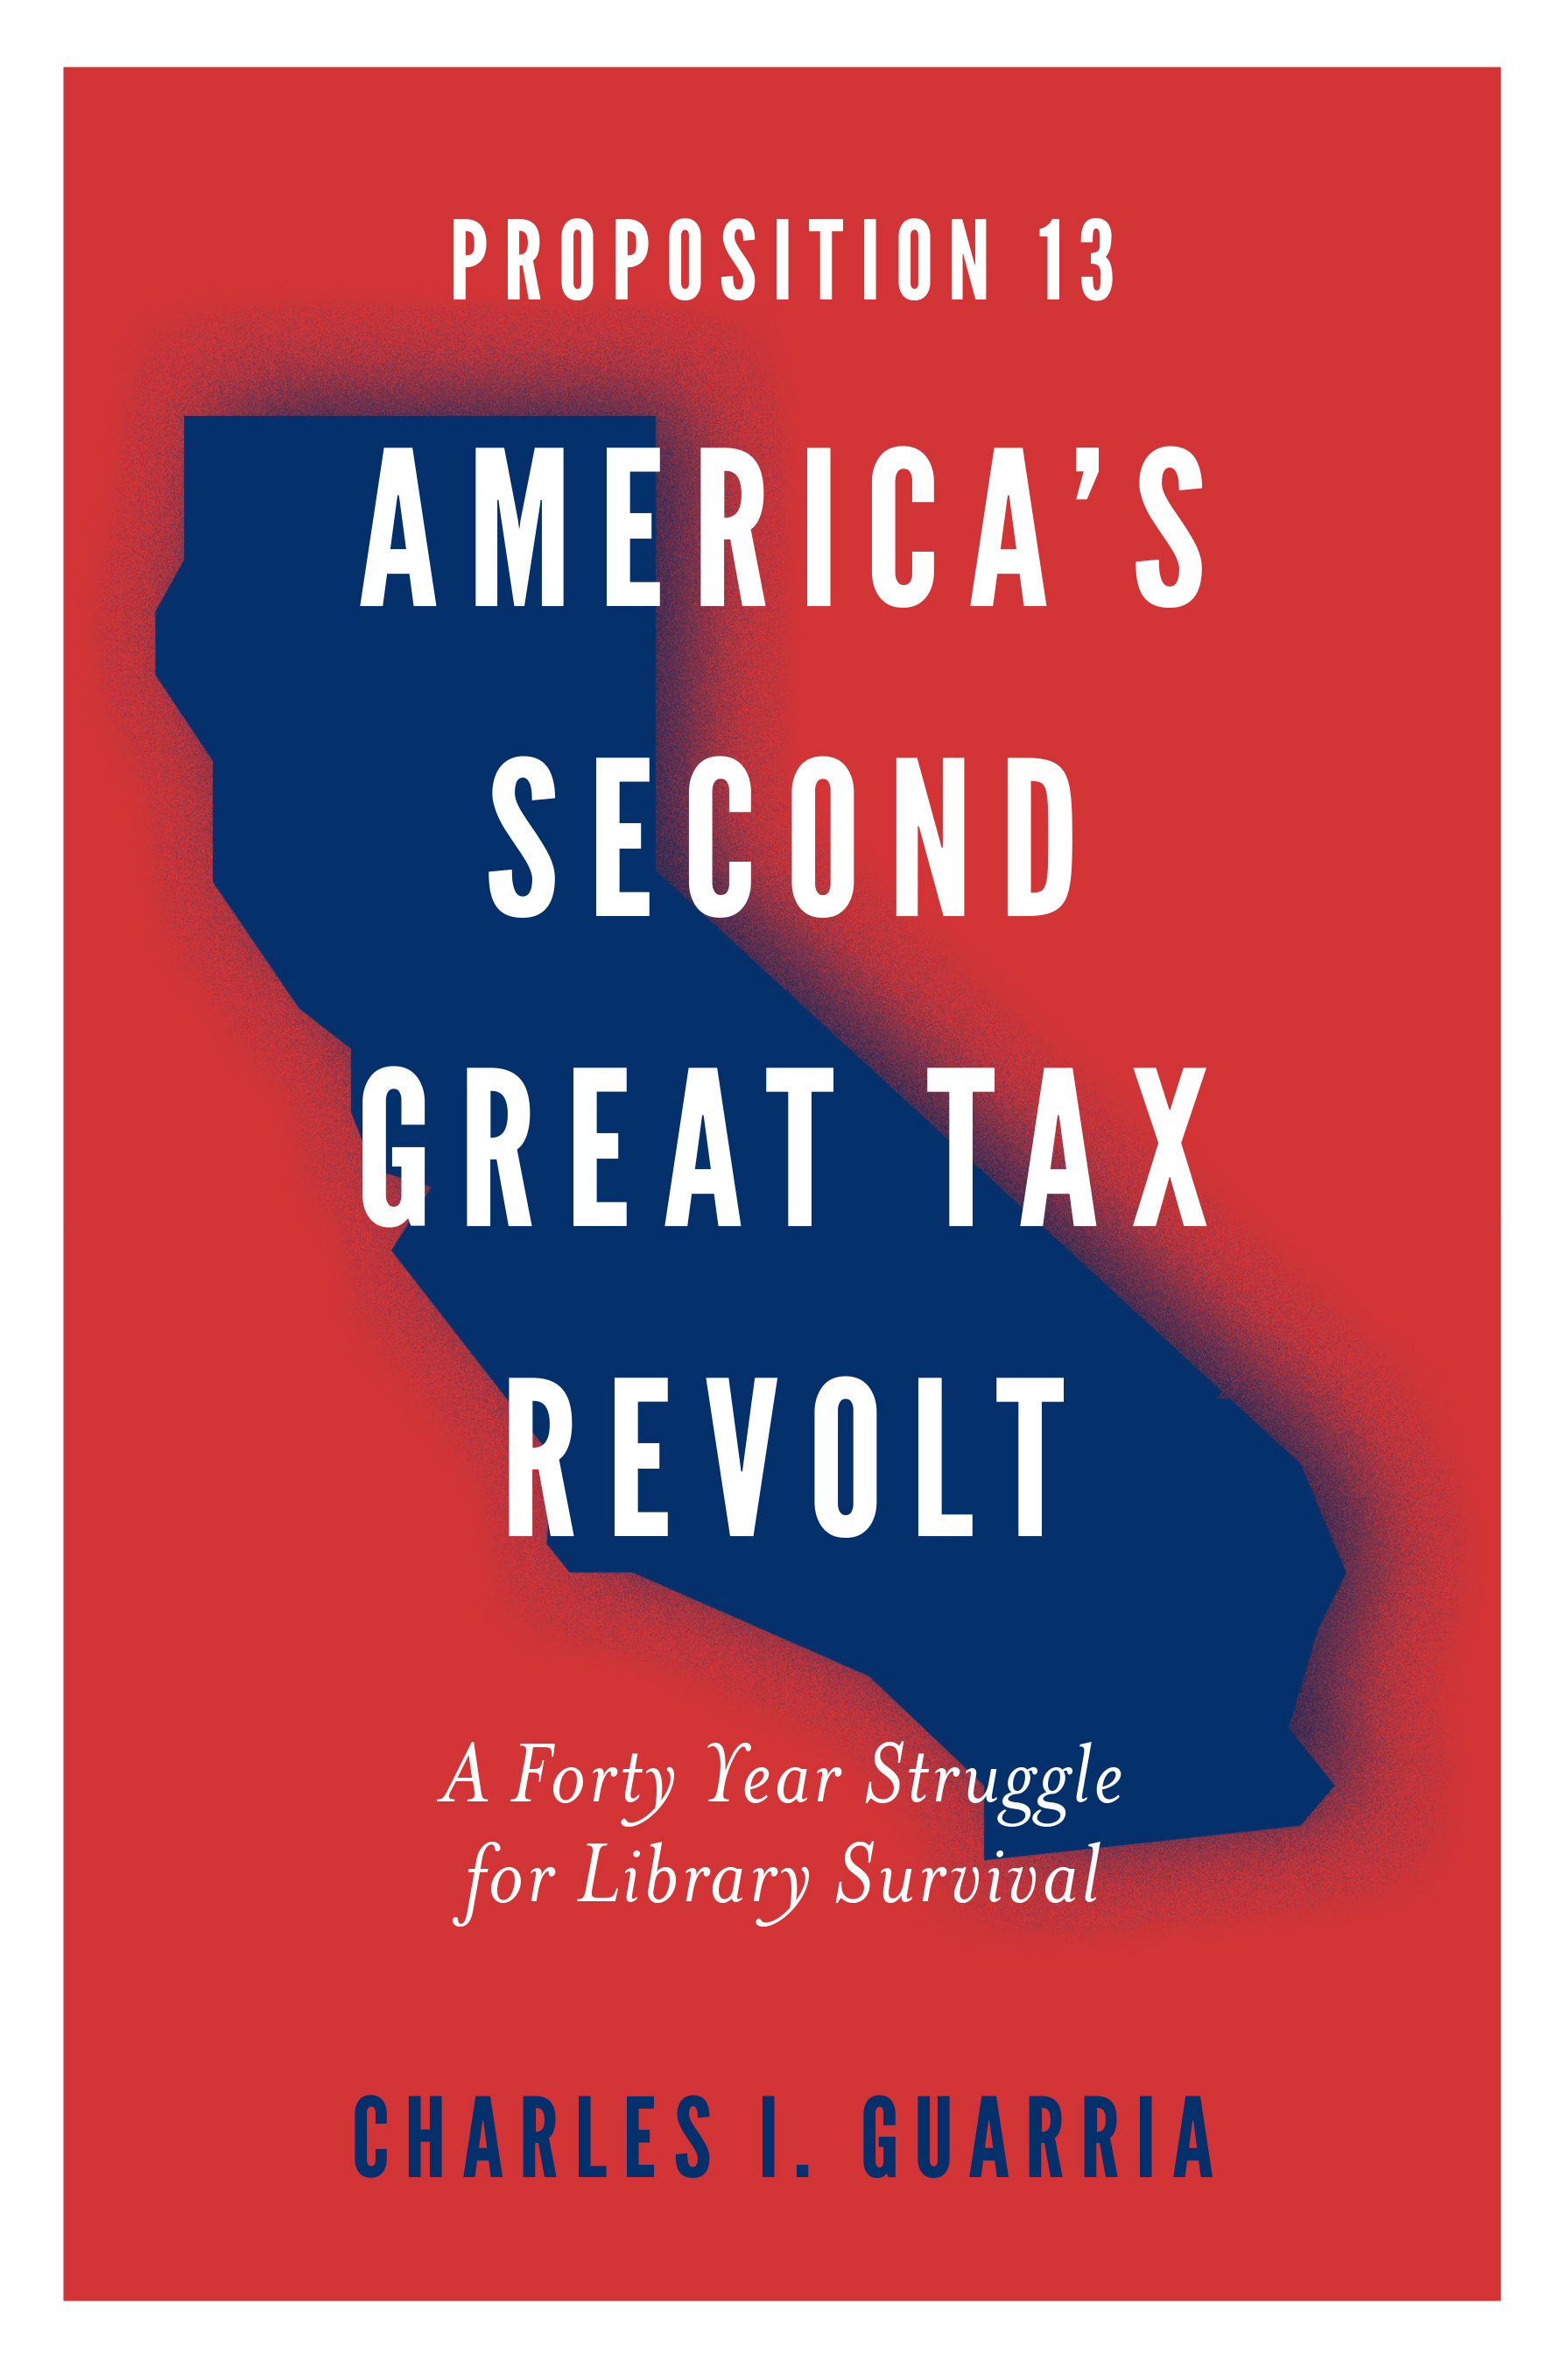 Book cover for Proposition 13 – America's Second Great Tax Revolt:  A Forty Year Struggle for Library Survival a book by Charles I. Guarria